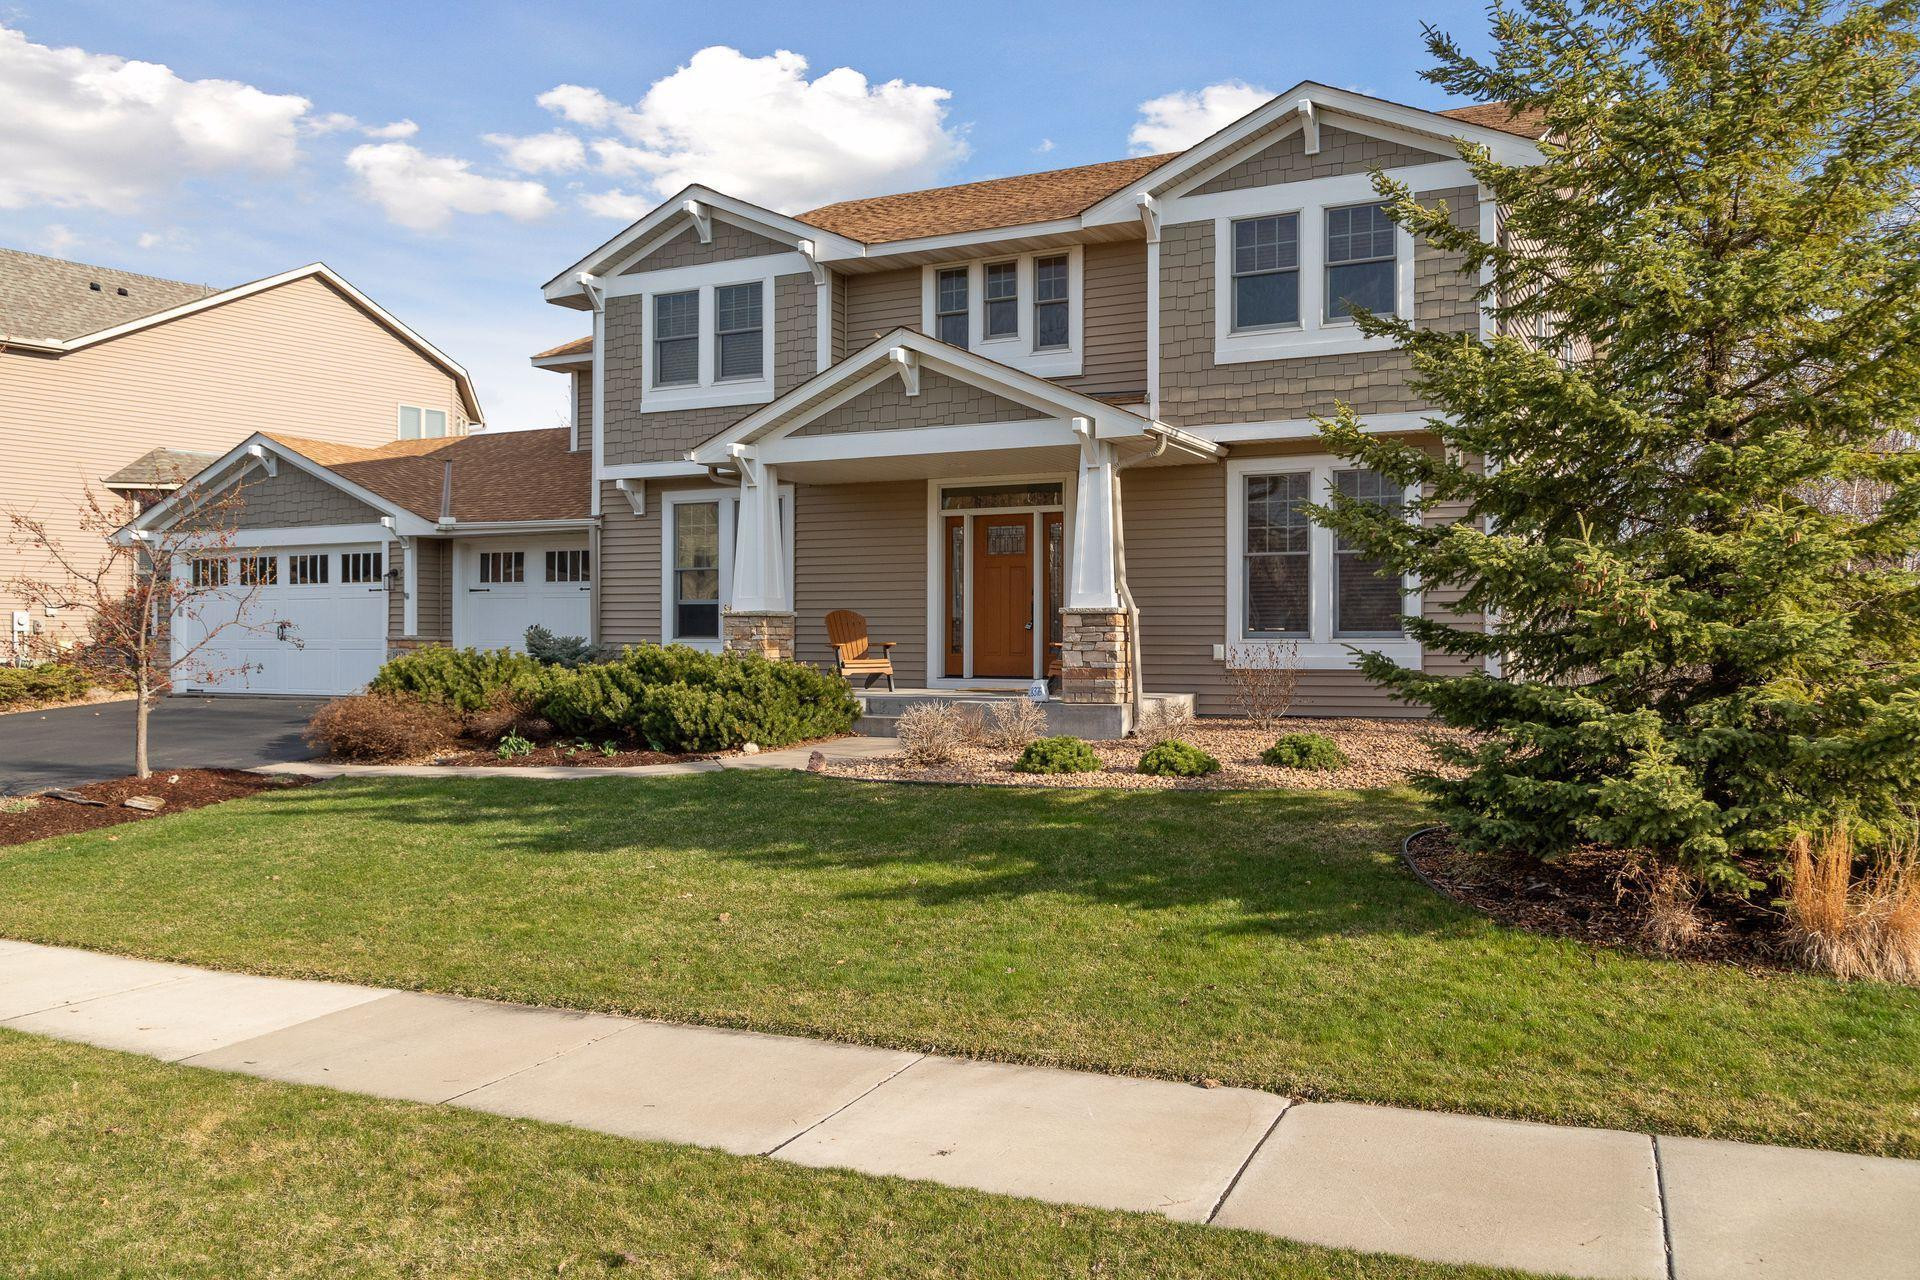 18376 66th Place N, Maple Grove, MN 55311